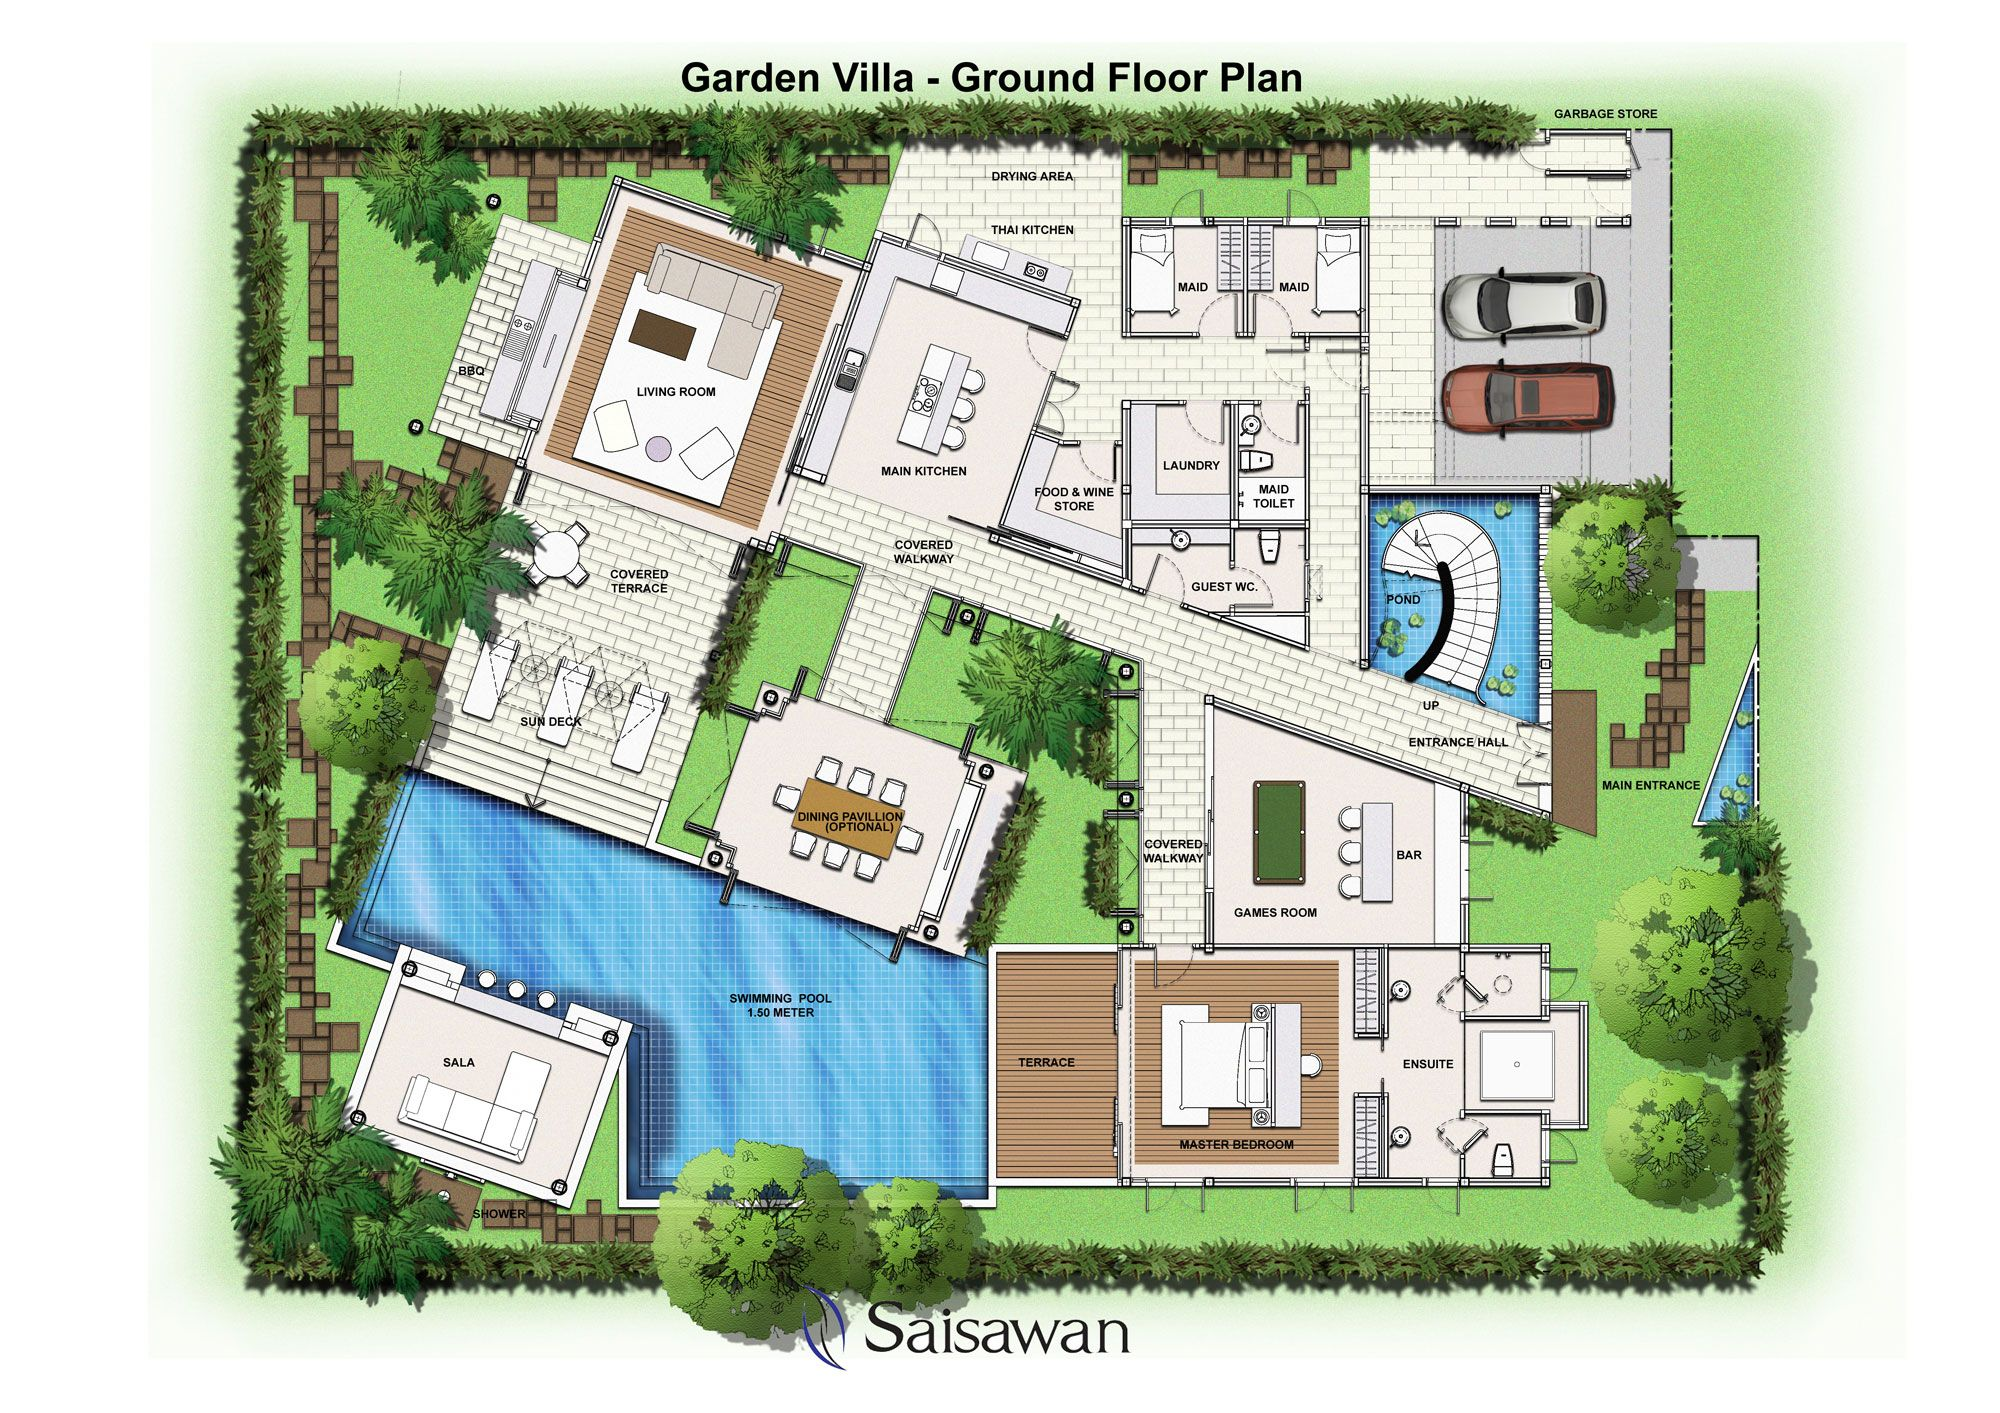 Saisawan garden villas ground floor plan house plans Plans for villas